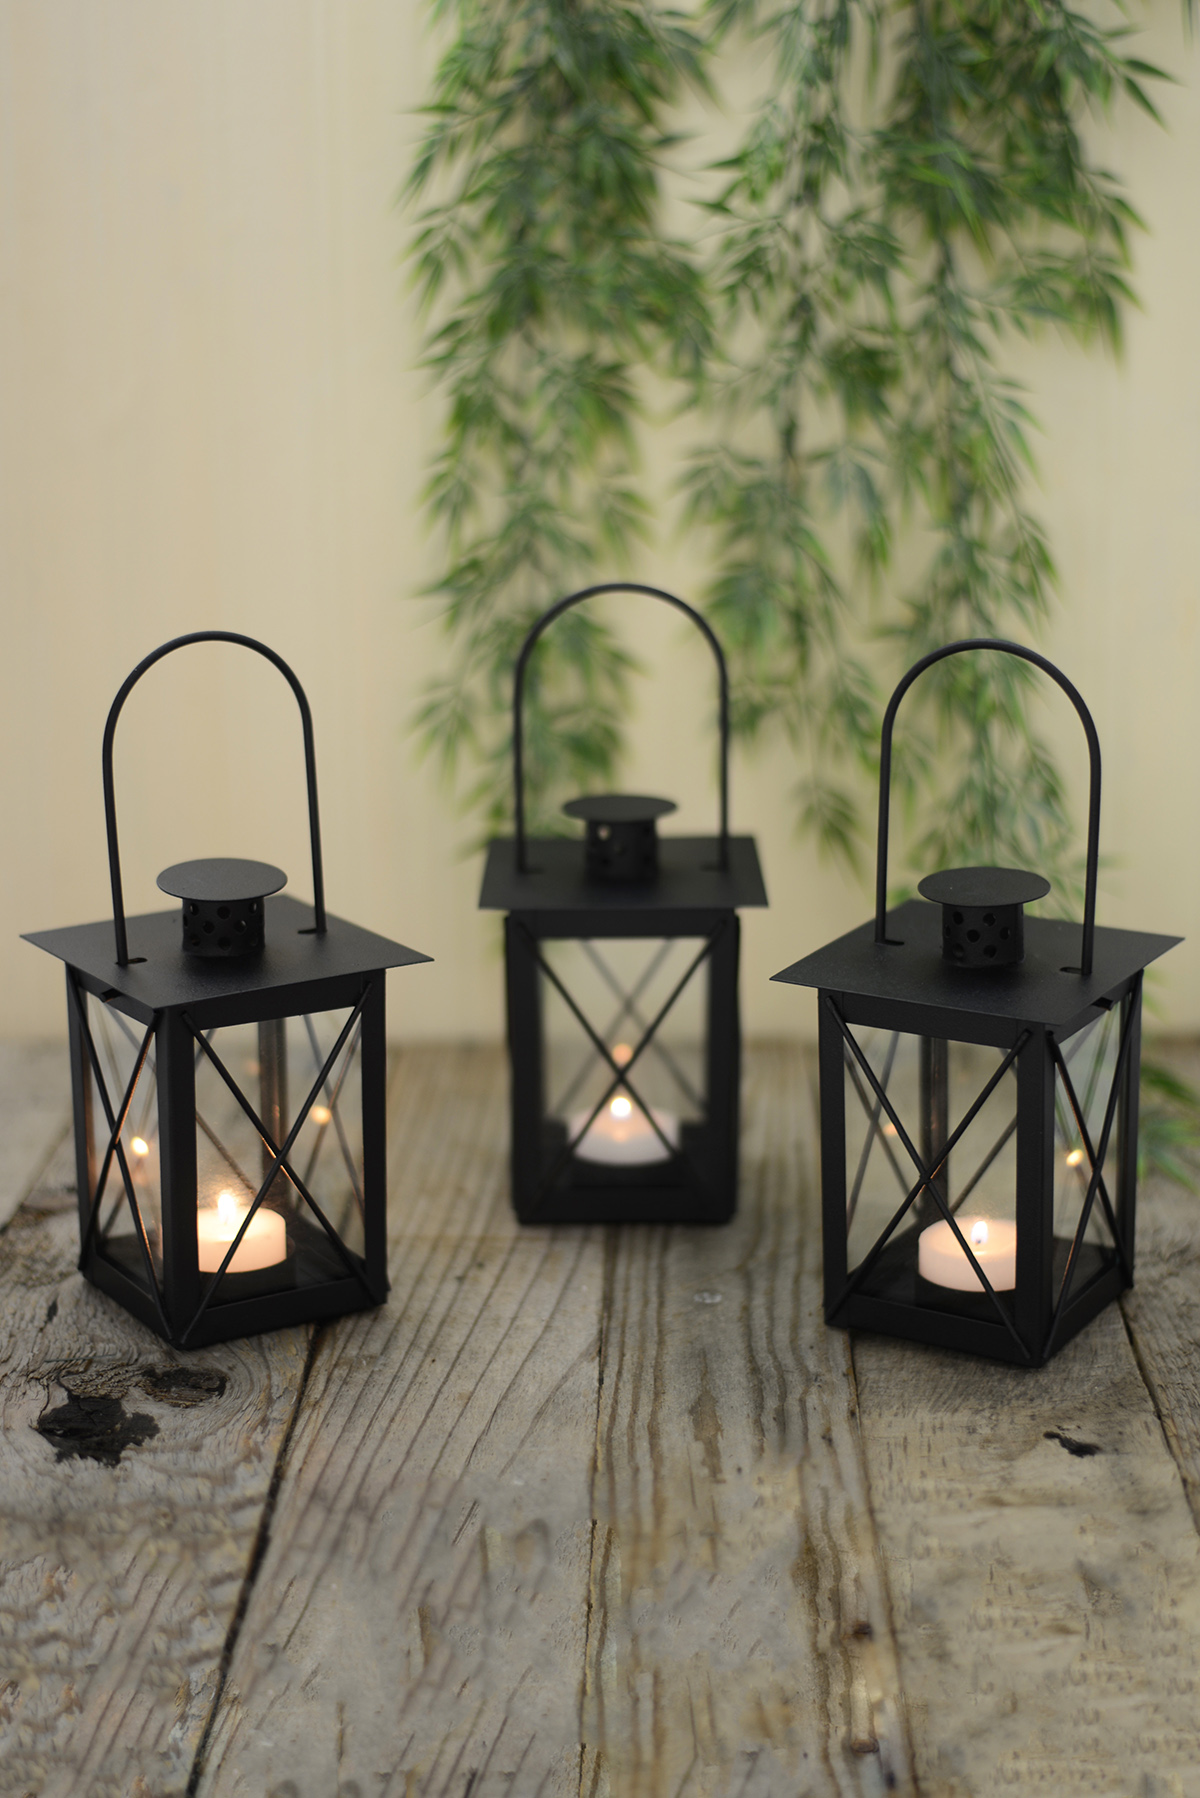 Inspiring candle lanterns for outdoor lighting ideas with outdoor candle lanterns and hanging candle lanterns